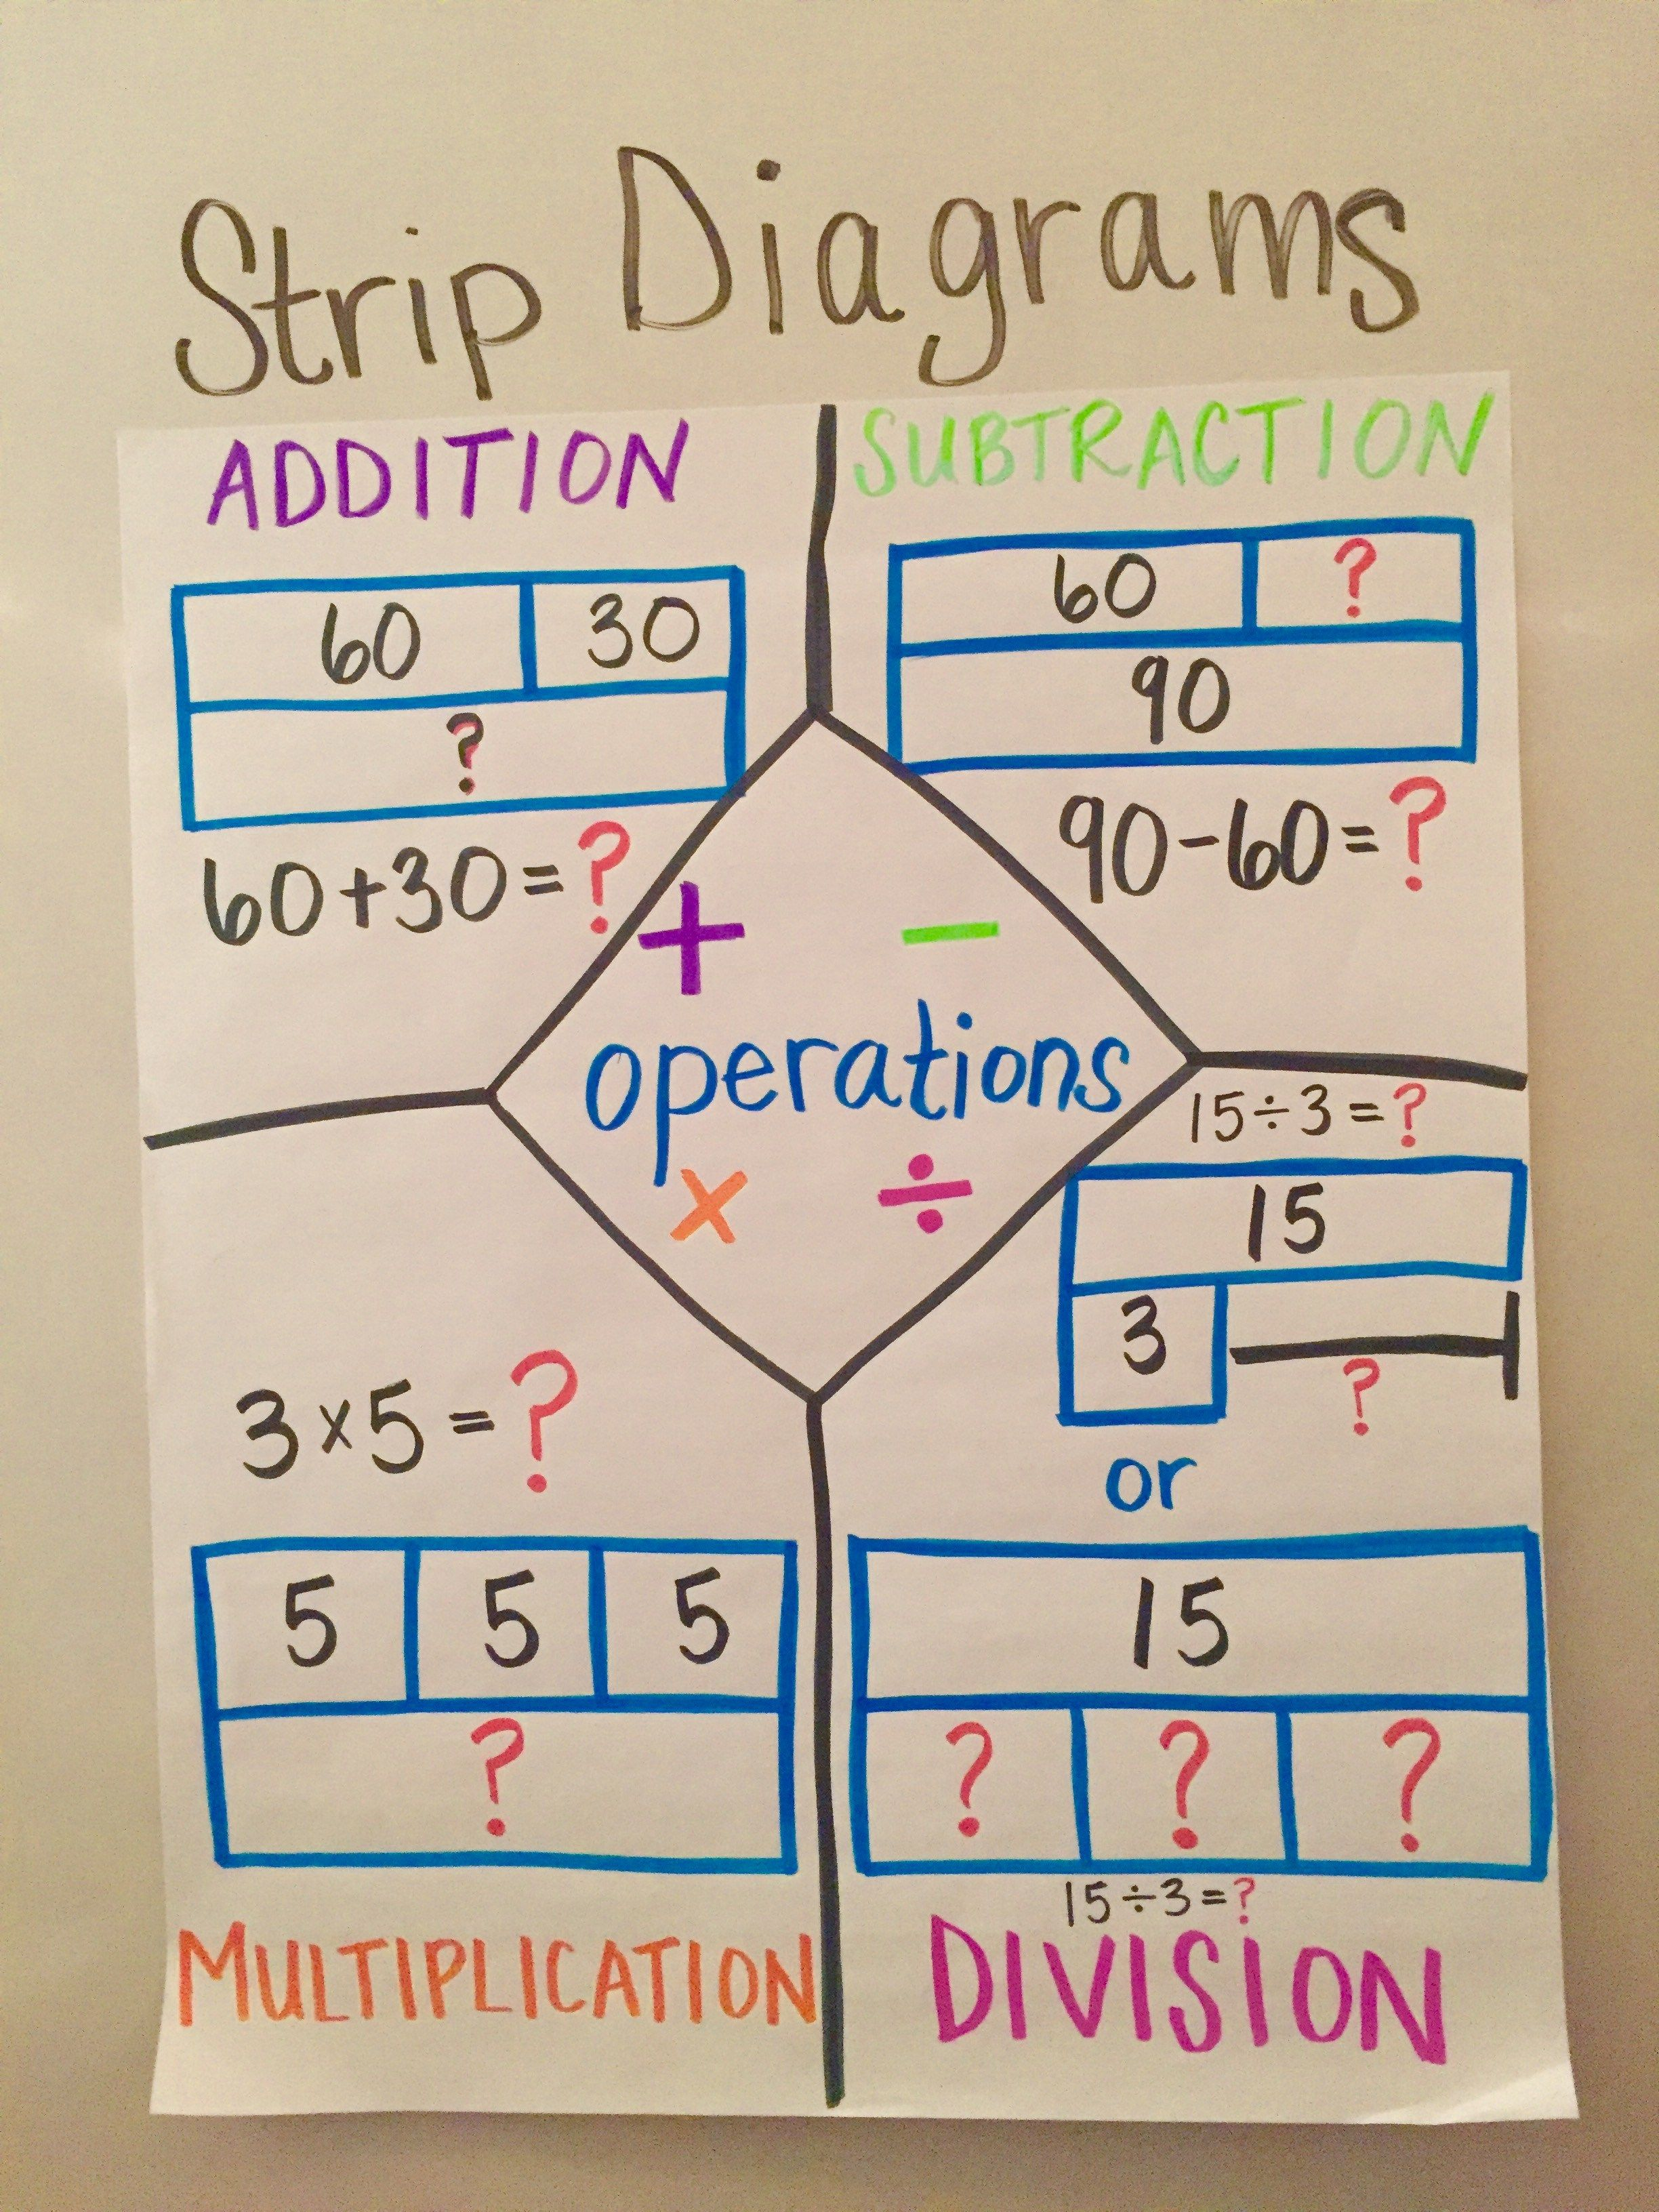 hight resolution of image result for strip diagram anchor chart strip diagram scientific notation 4th grade math